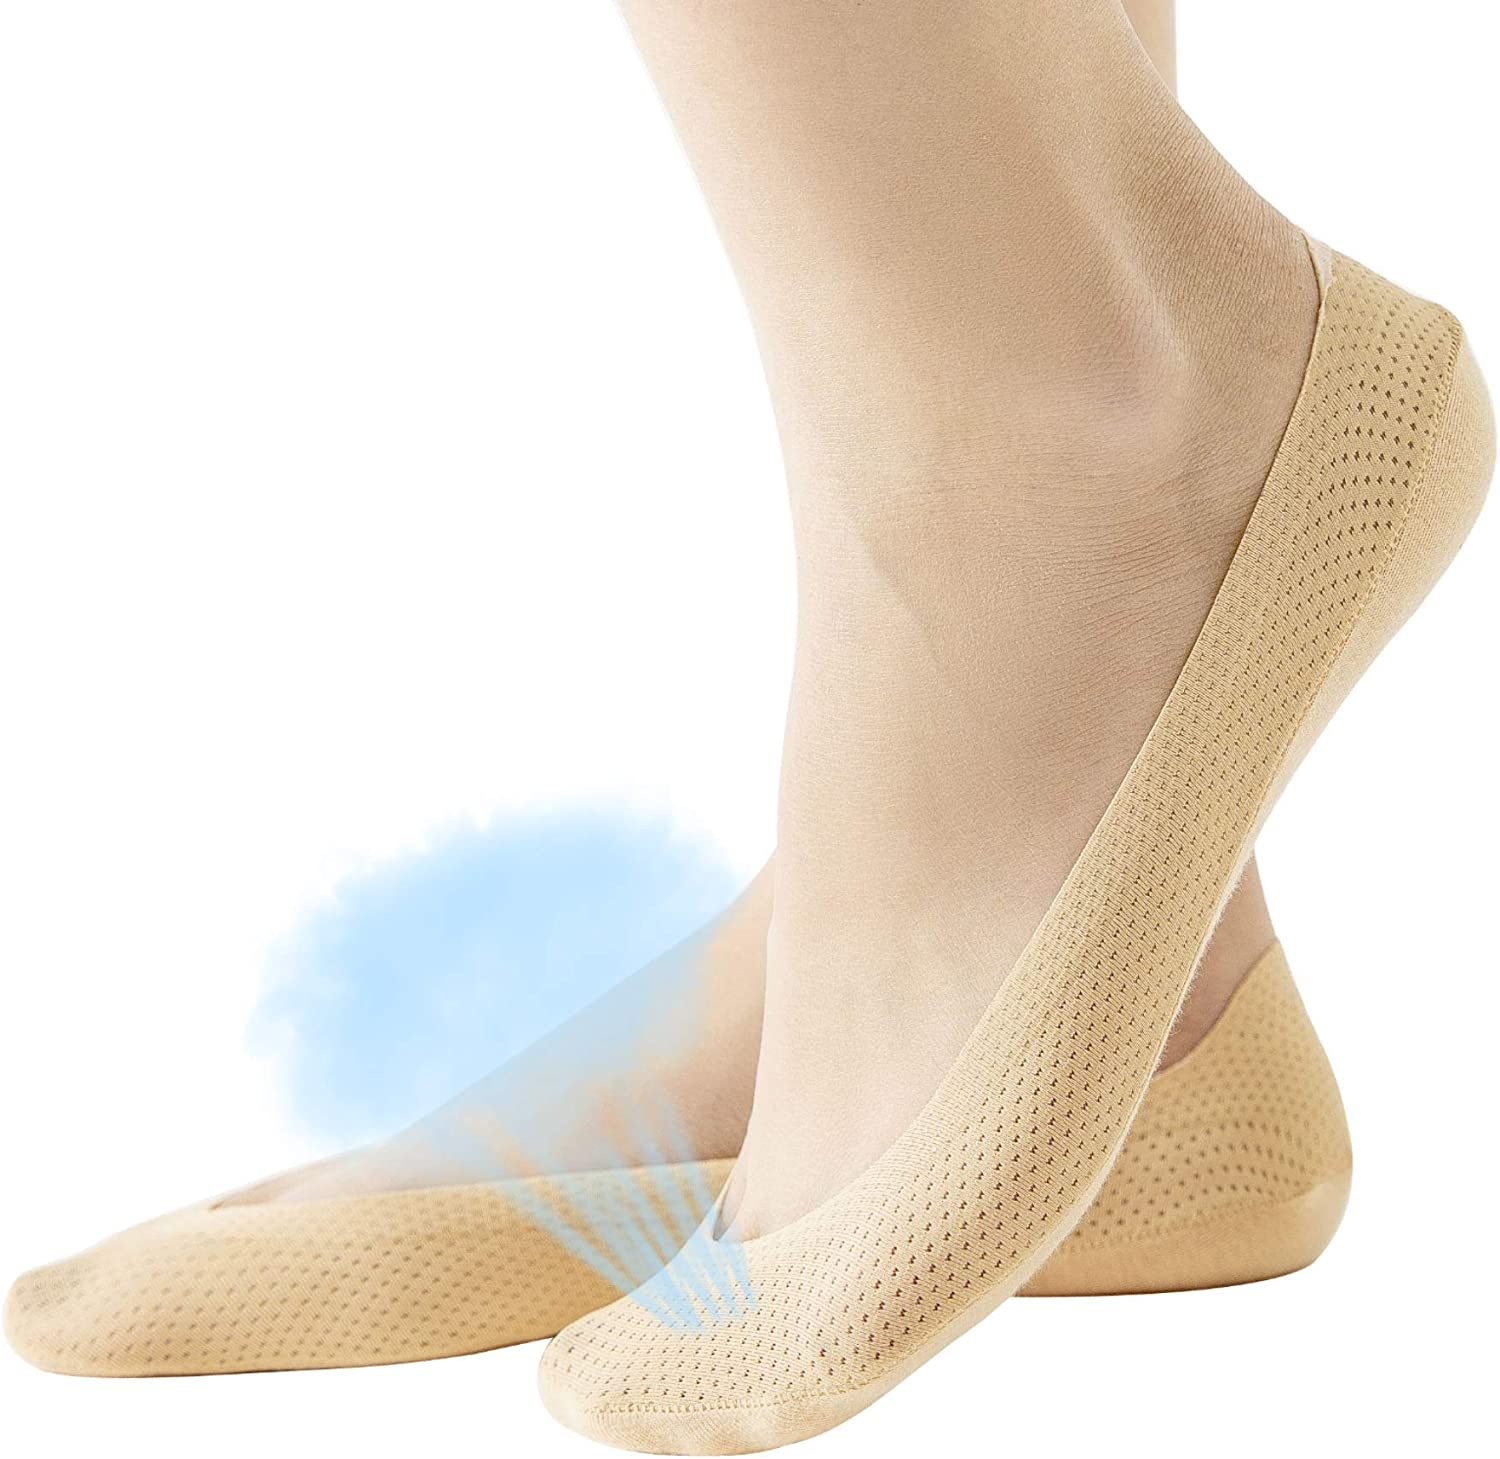 Womens No Show Socks Cotton Nylon Thin Low Cut Liner Non Slip Boat hidden Invisible Socks for Flats Black Nude 4 to 6 pack